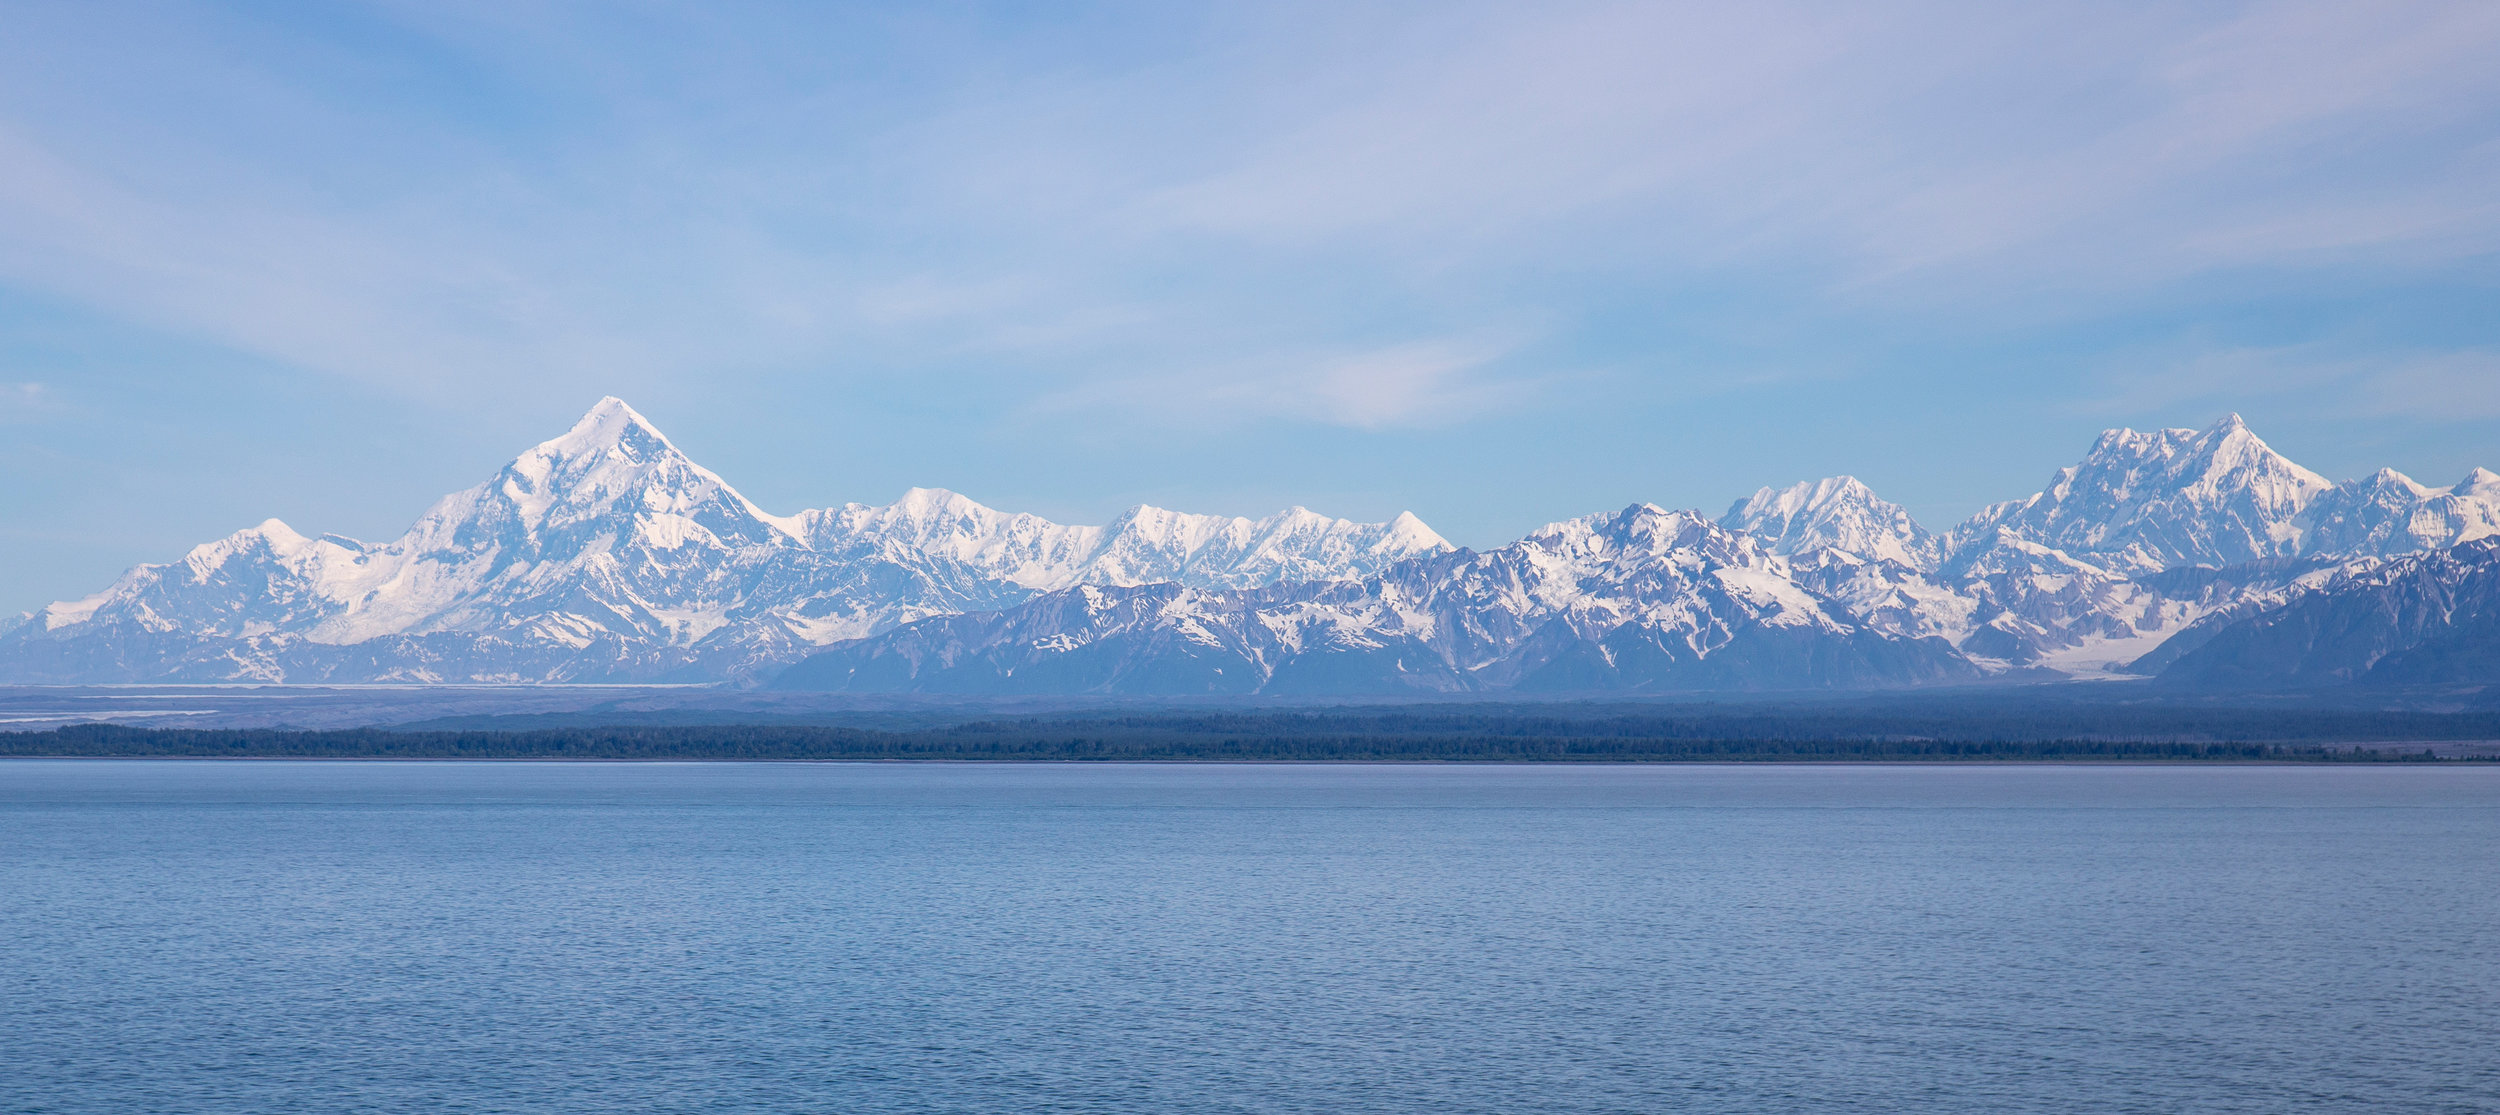 One of the first views that greeted us that morning was Mount Elias and the surrounding range.